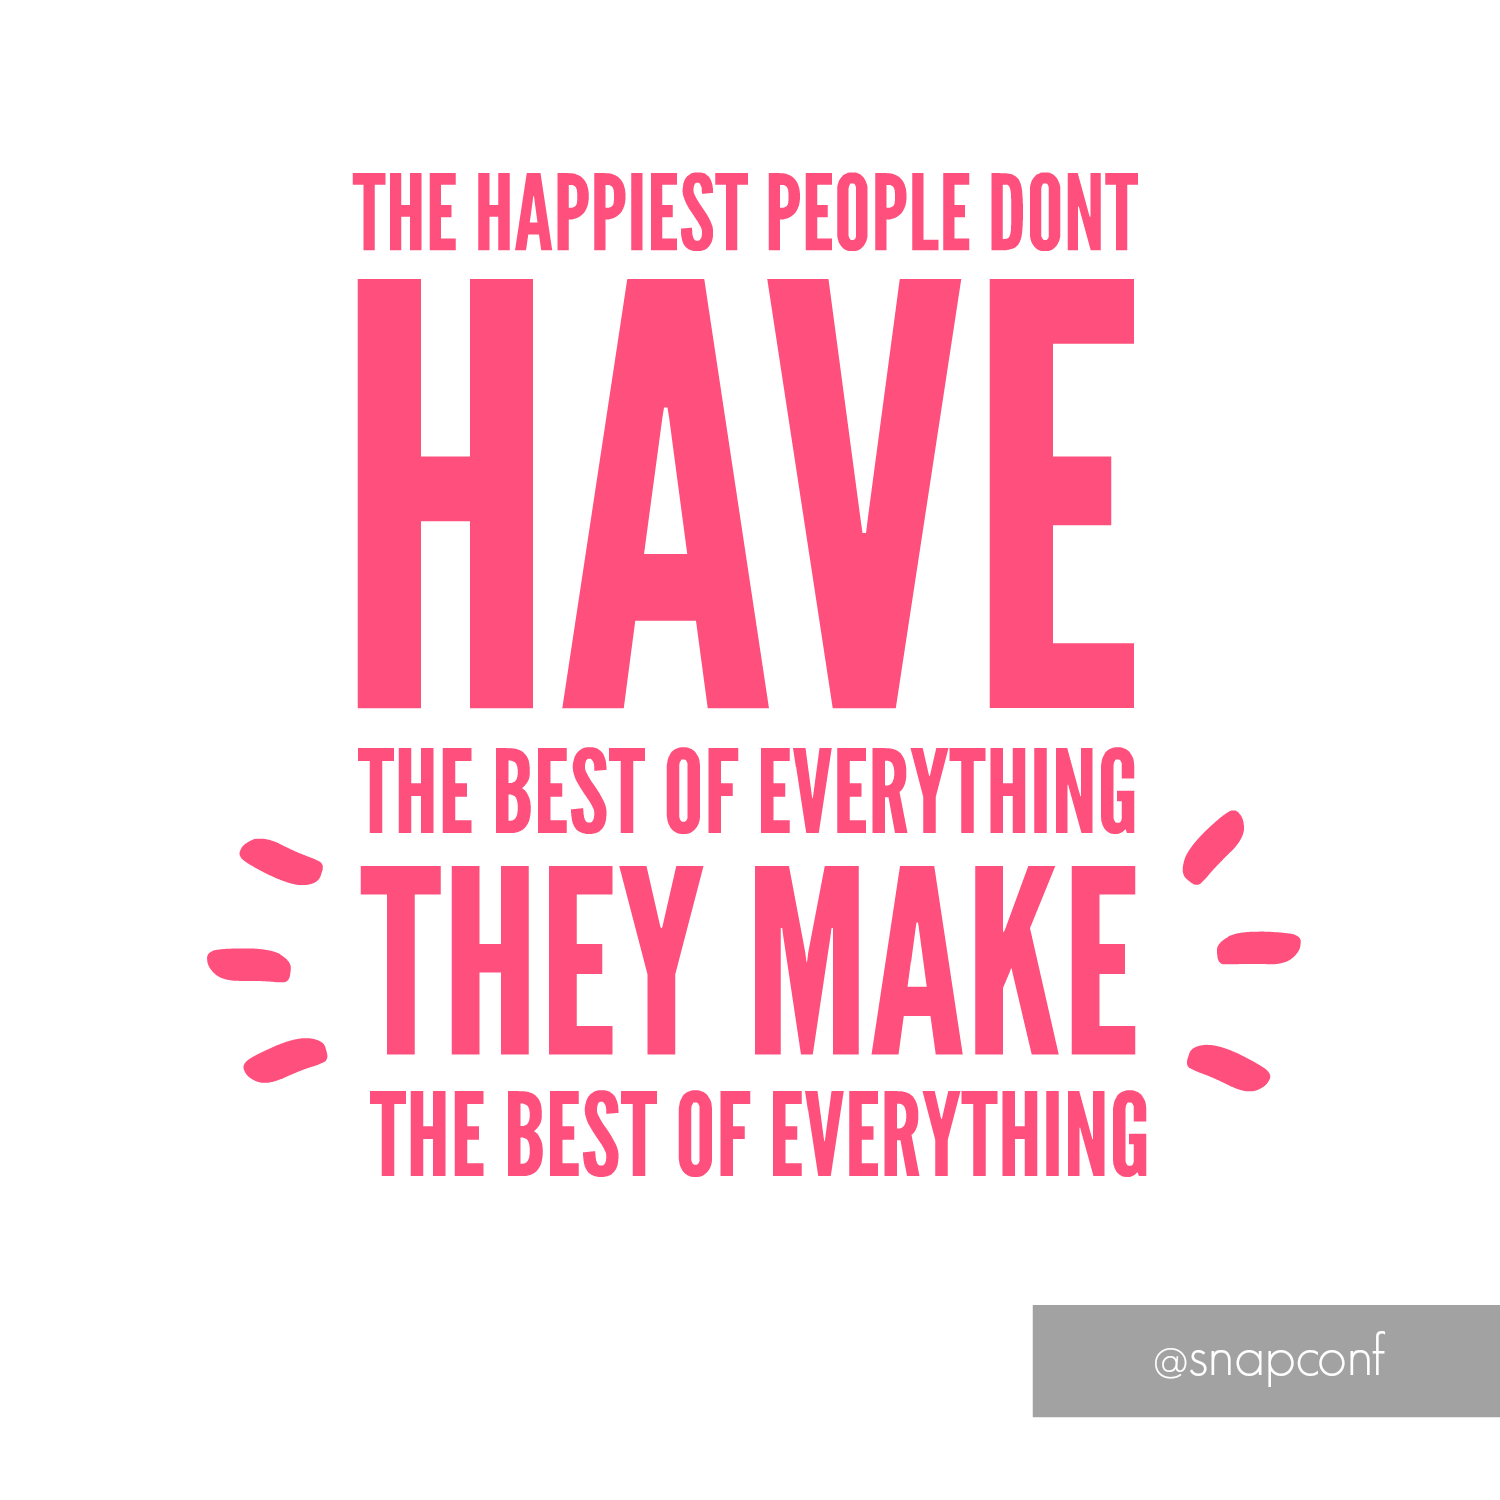 10 Inspirational Quote Memes Sized to Share on Facebook and Instagram